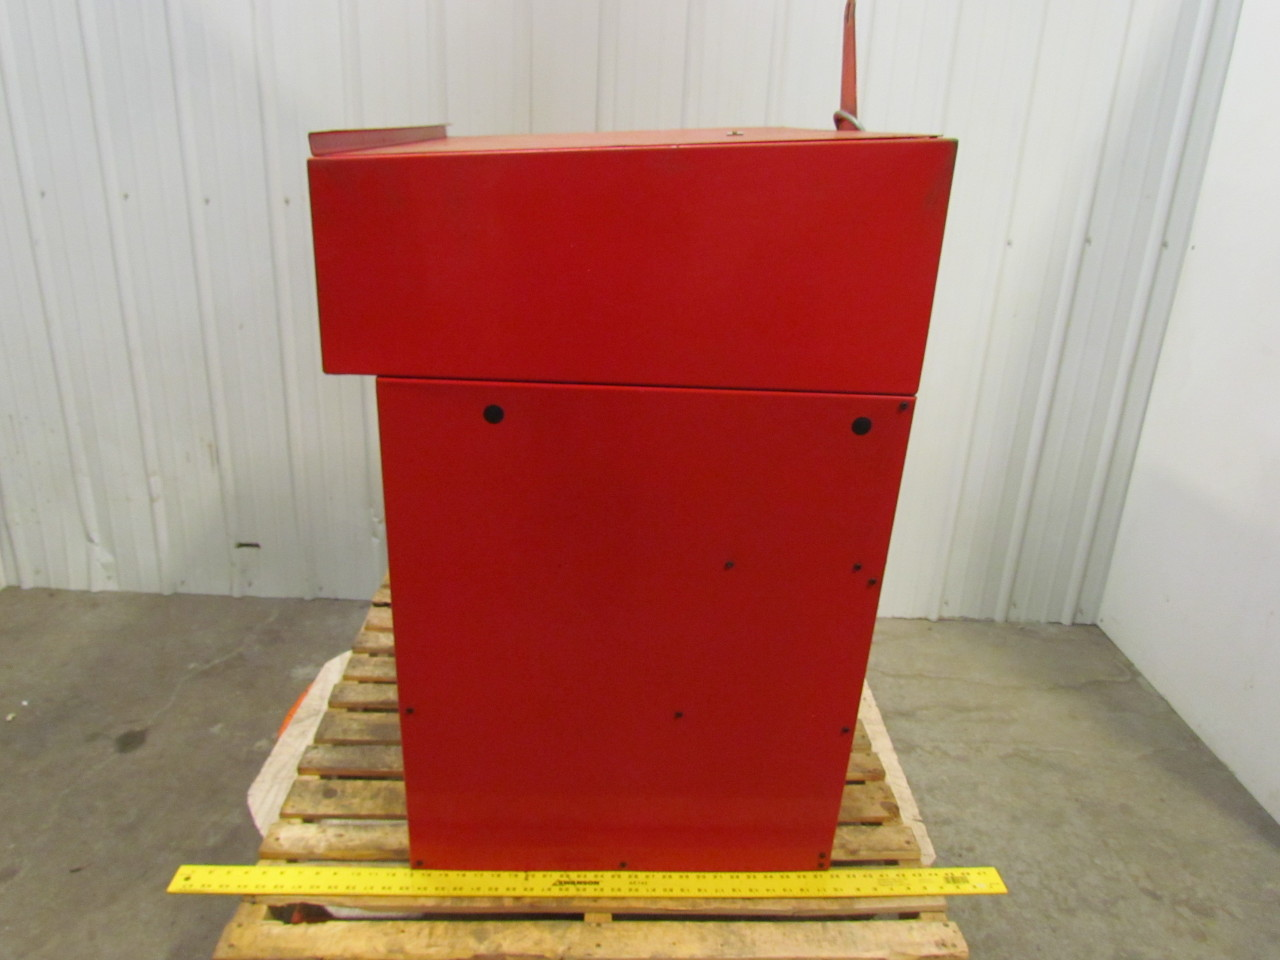 System One Safety Kleen 115v 20gal Heated Recycling Parts